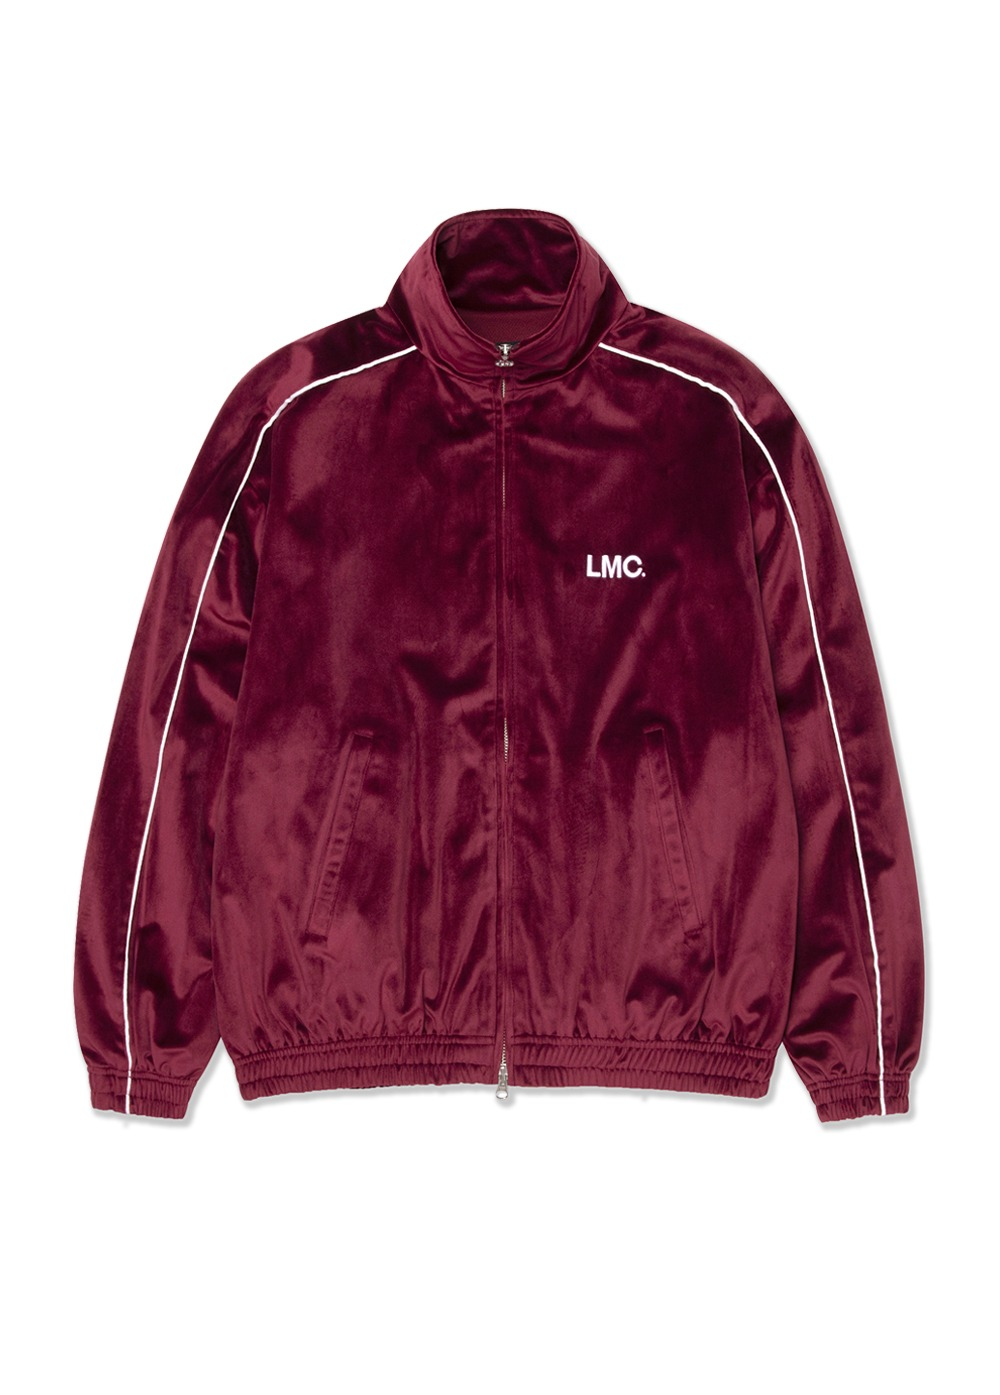 LMC VELOUR TRACK TOP burgundy